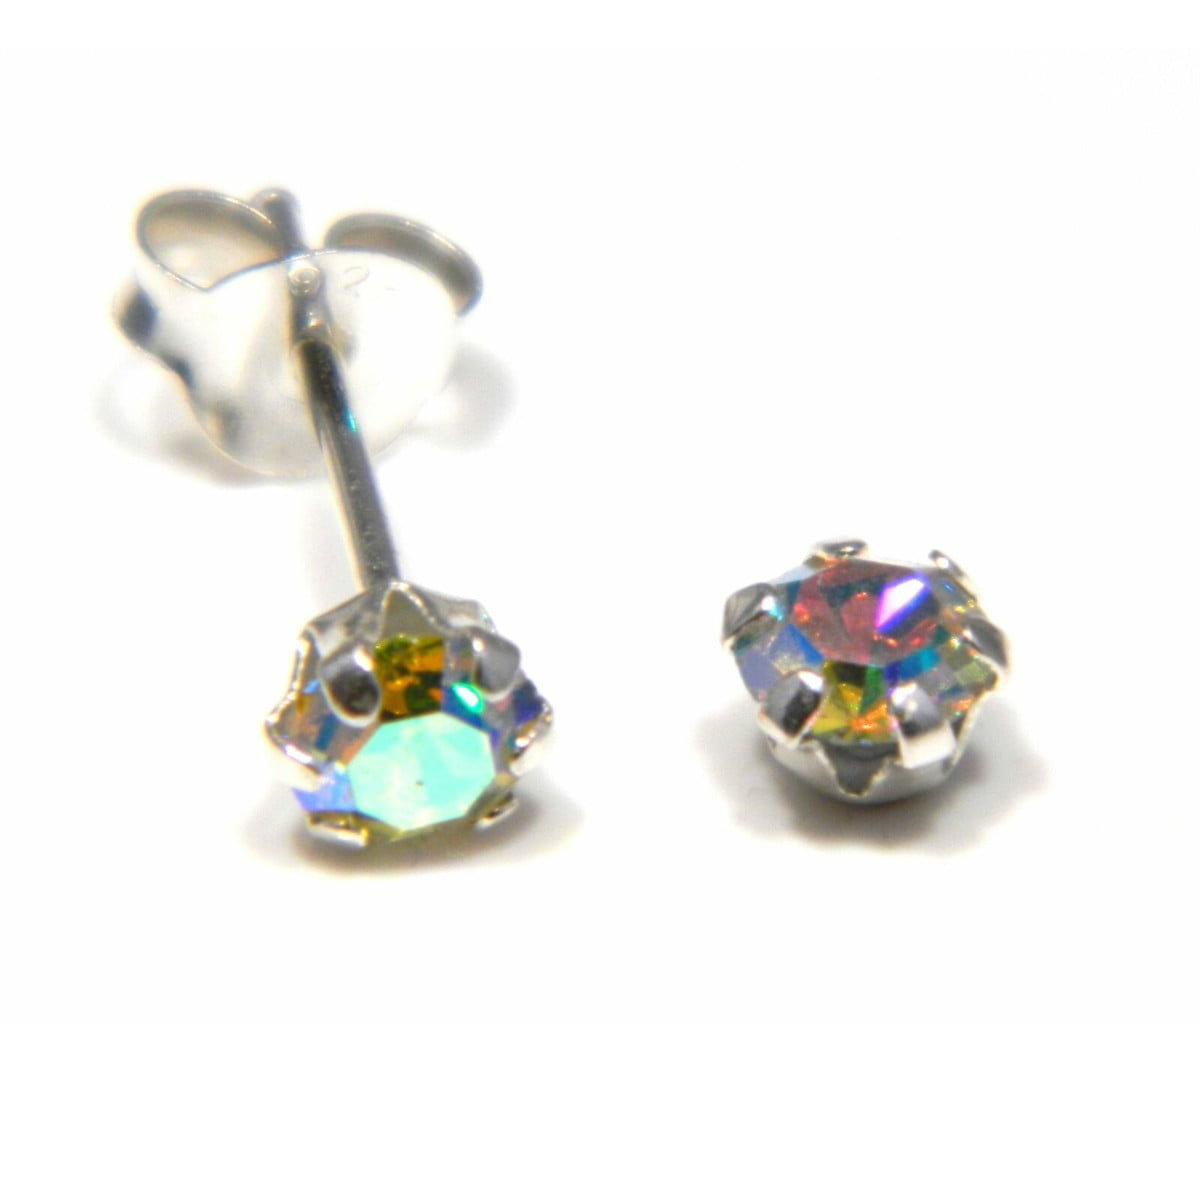 4 mm aurora borealis coloured crystal stud round solitaire earrings in sterling silver